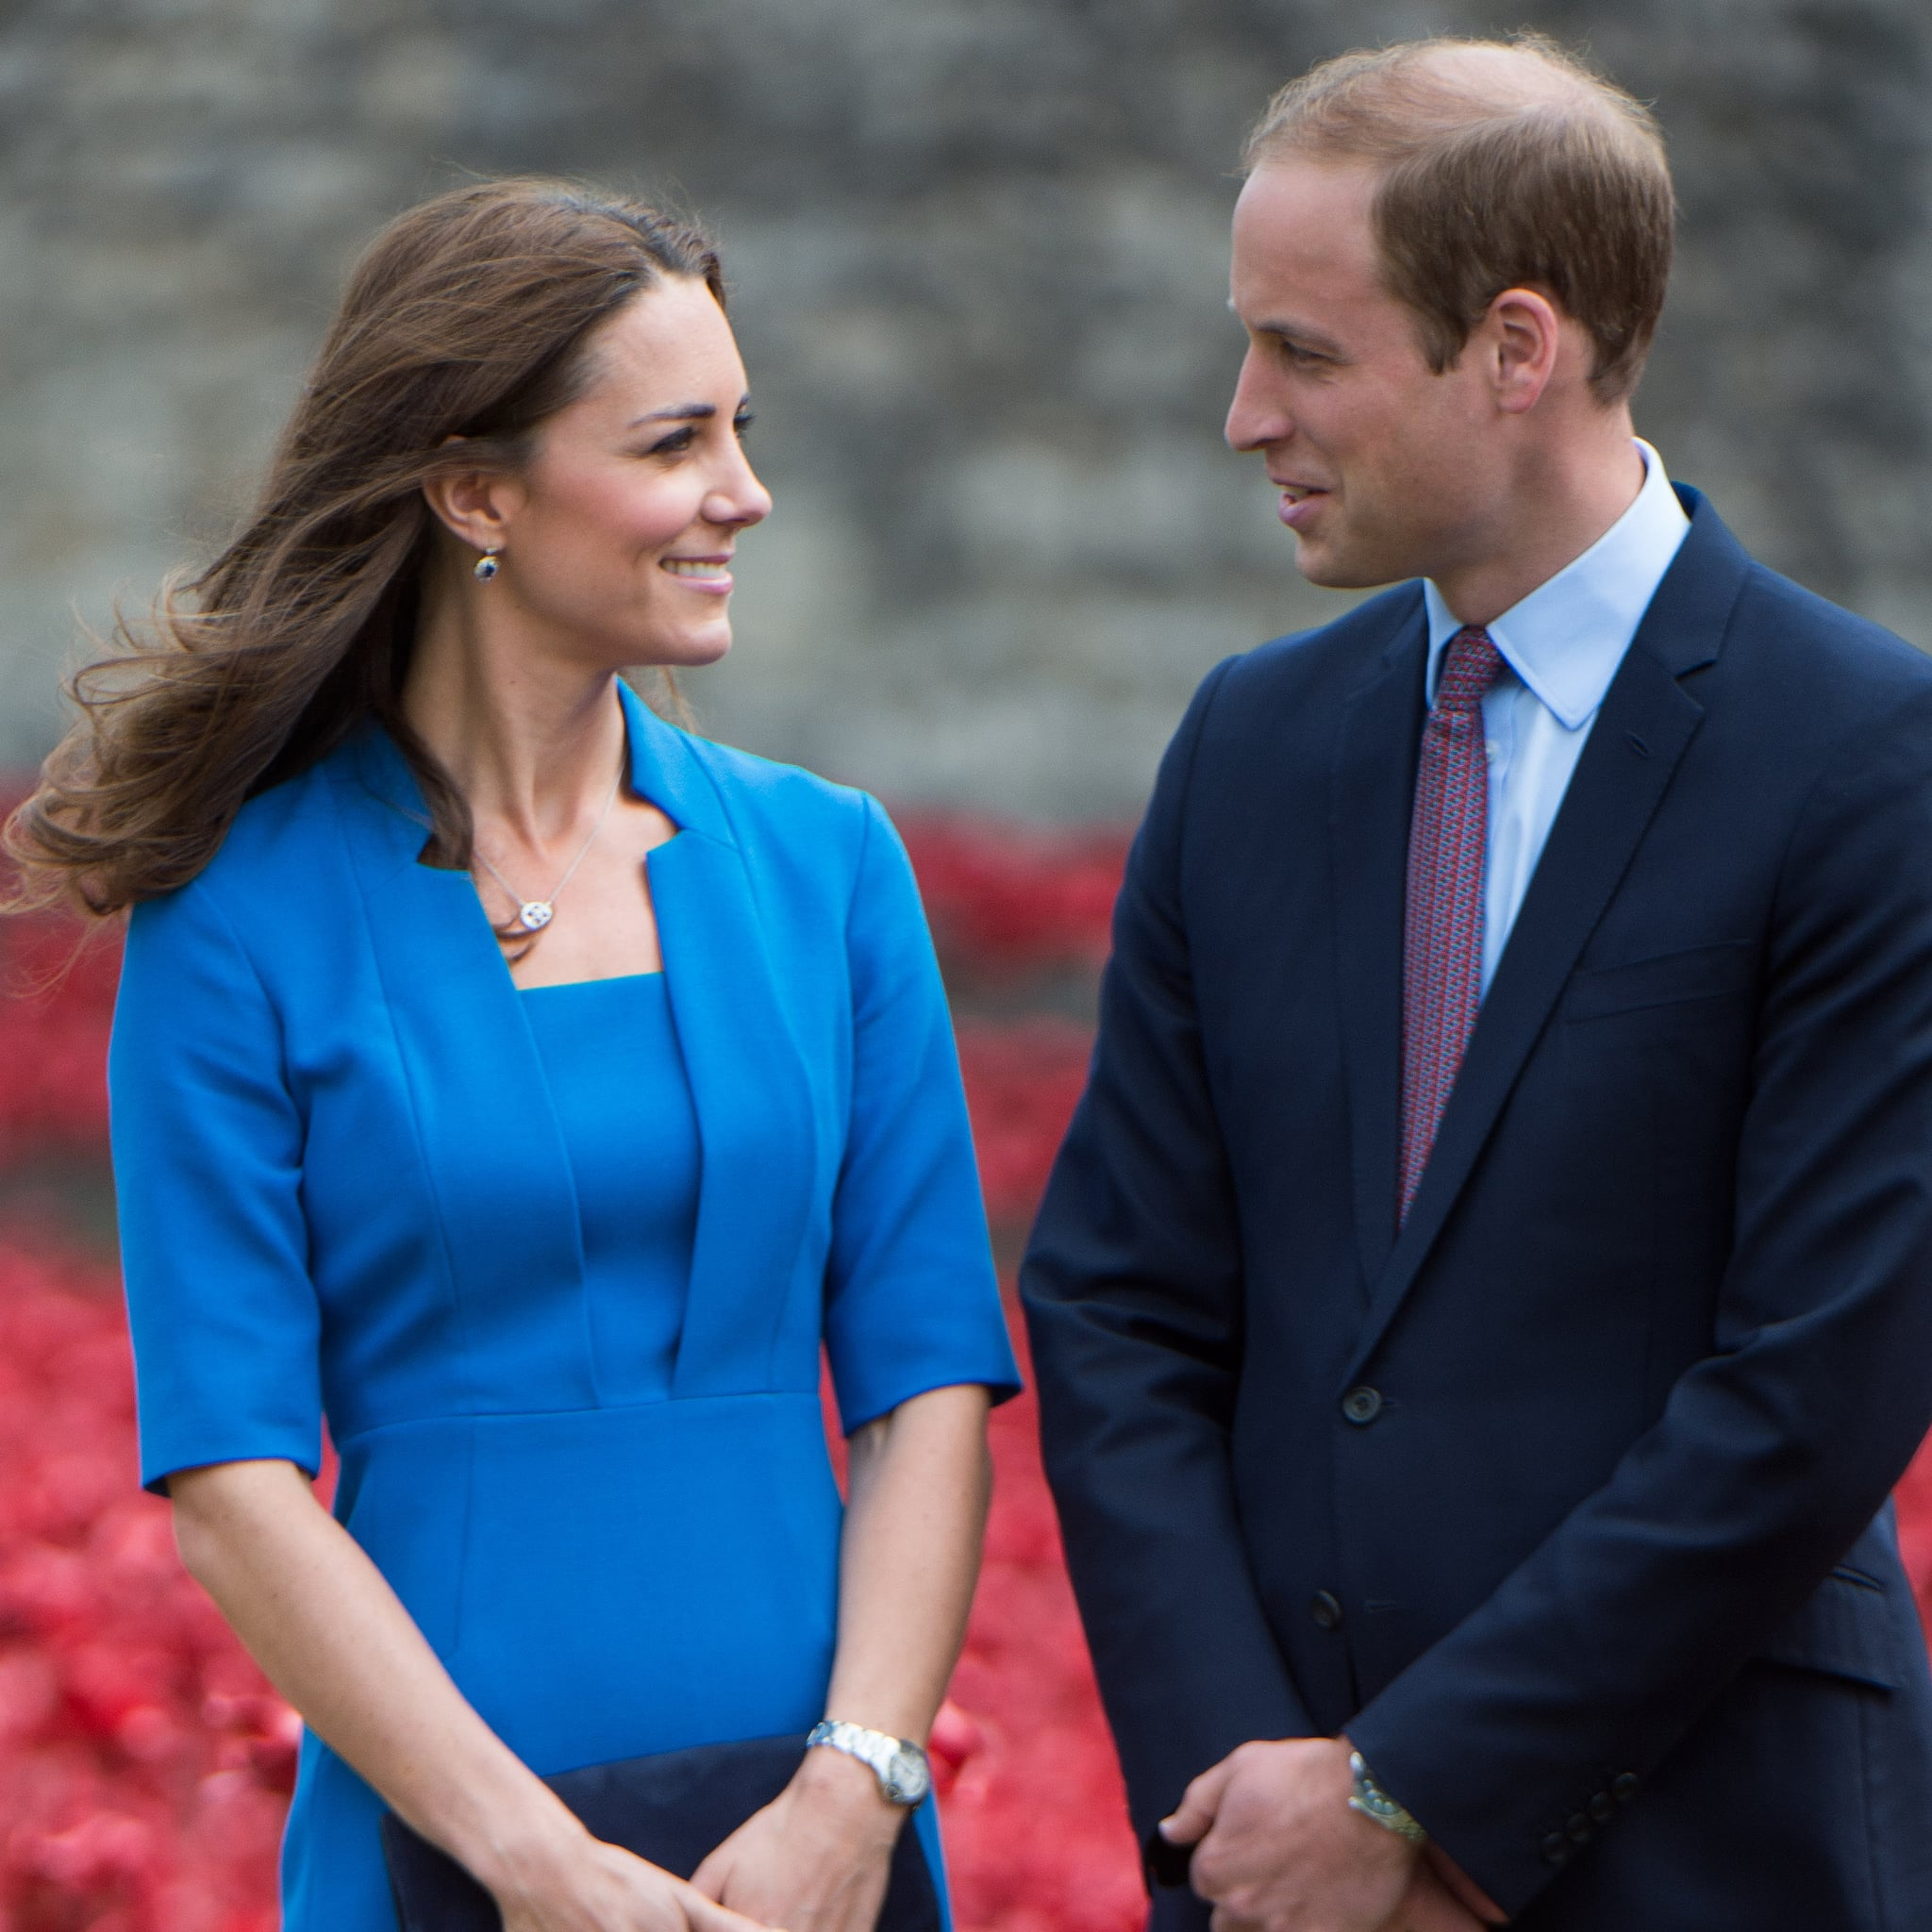 A New Royal Baby Is On The Way! Kate Is Pregnant With Baby